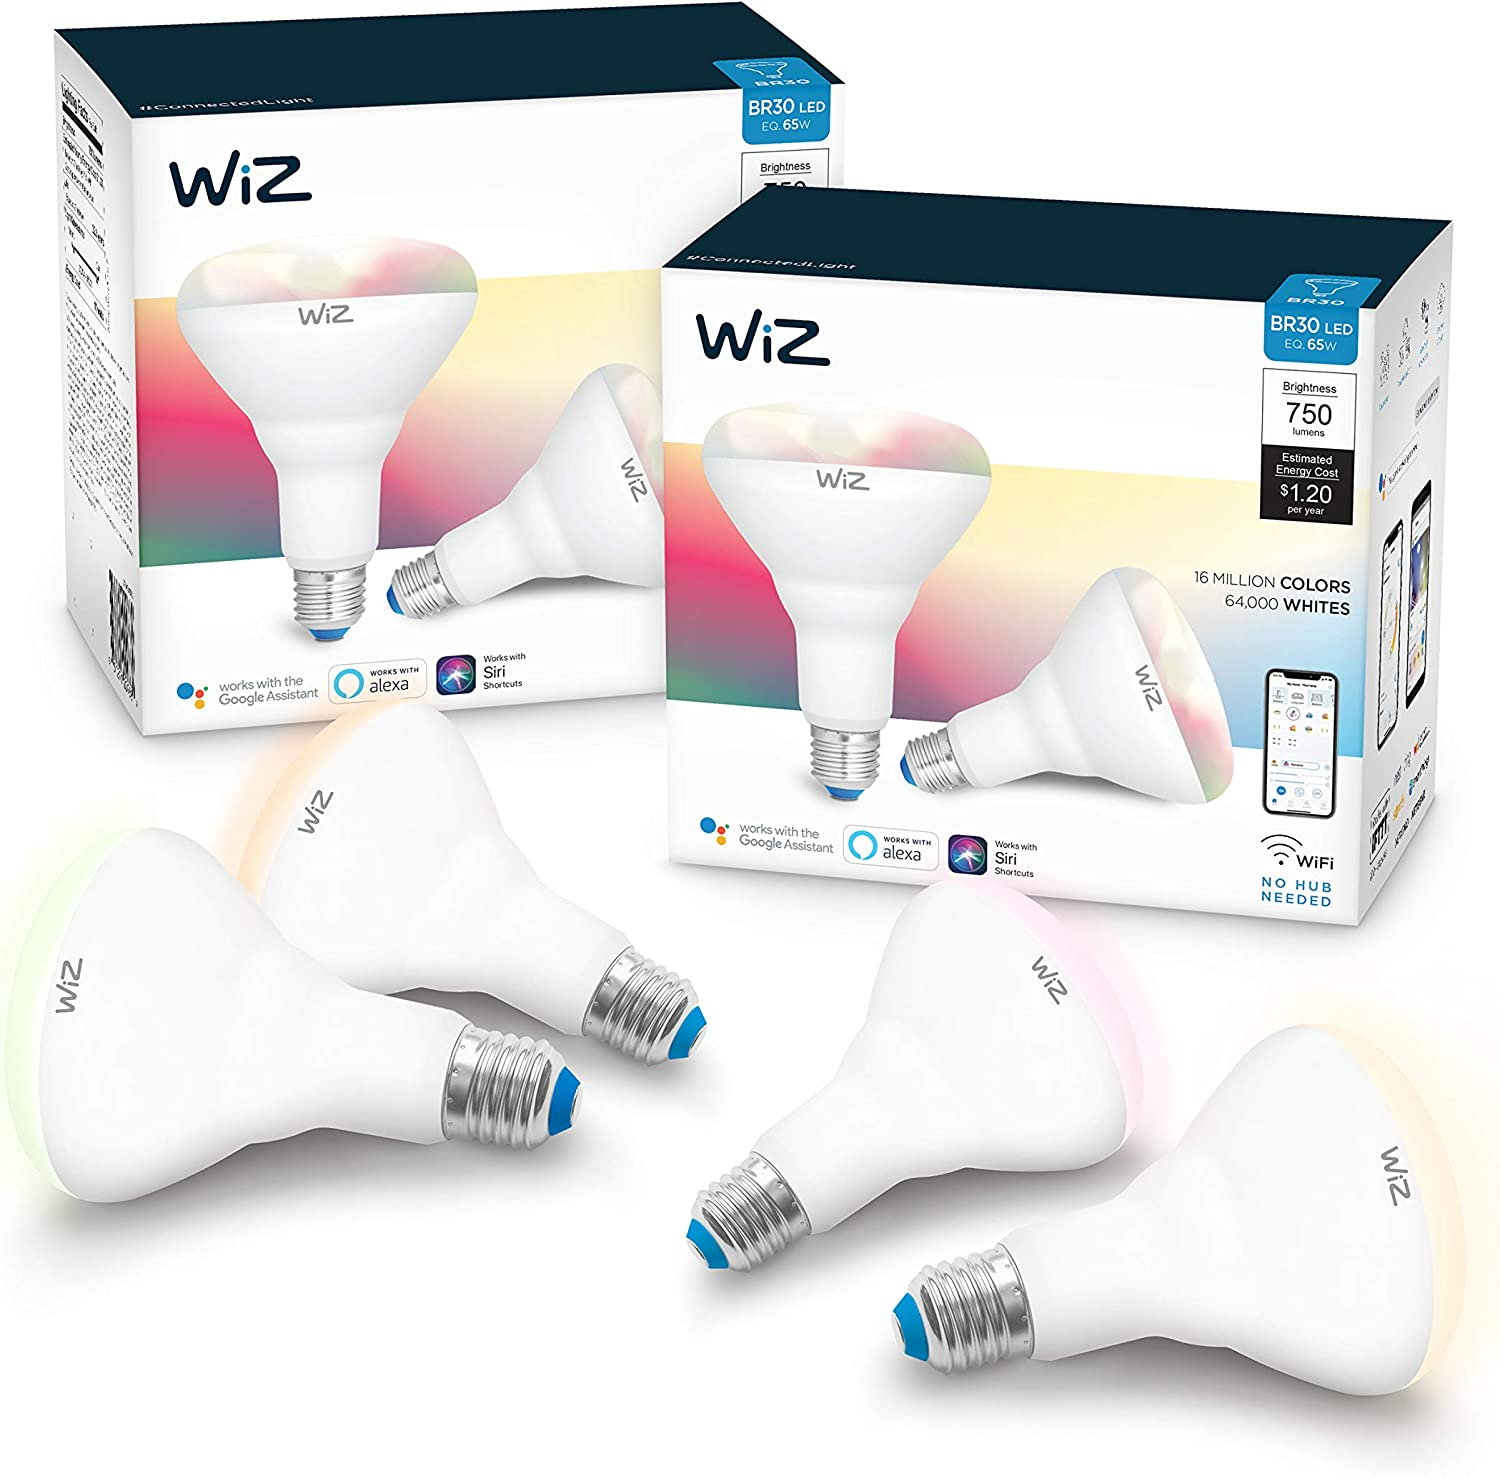 WiZ IZ20087584 65 Watt EQ BR30 Smart WiFi Connected LED Light Bulbs/Compatible with Alexa and Google Home, no Hub Required, RGB+ Color Changing/Tunable/Dimmable, 4